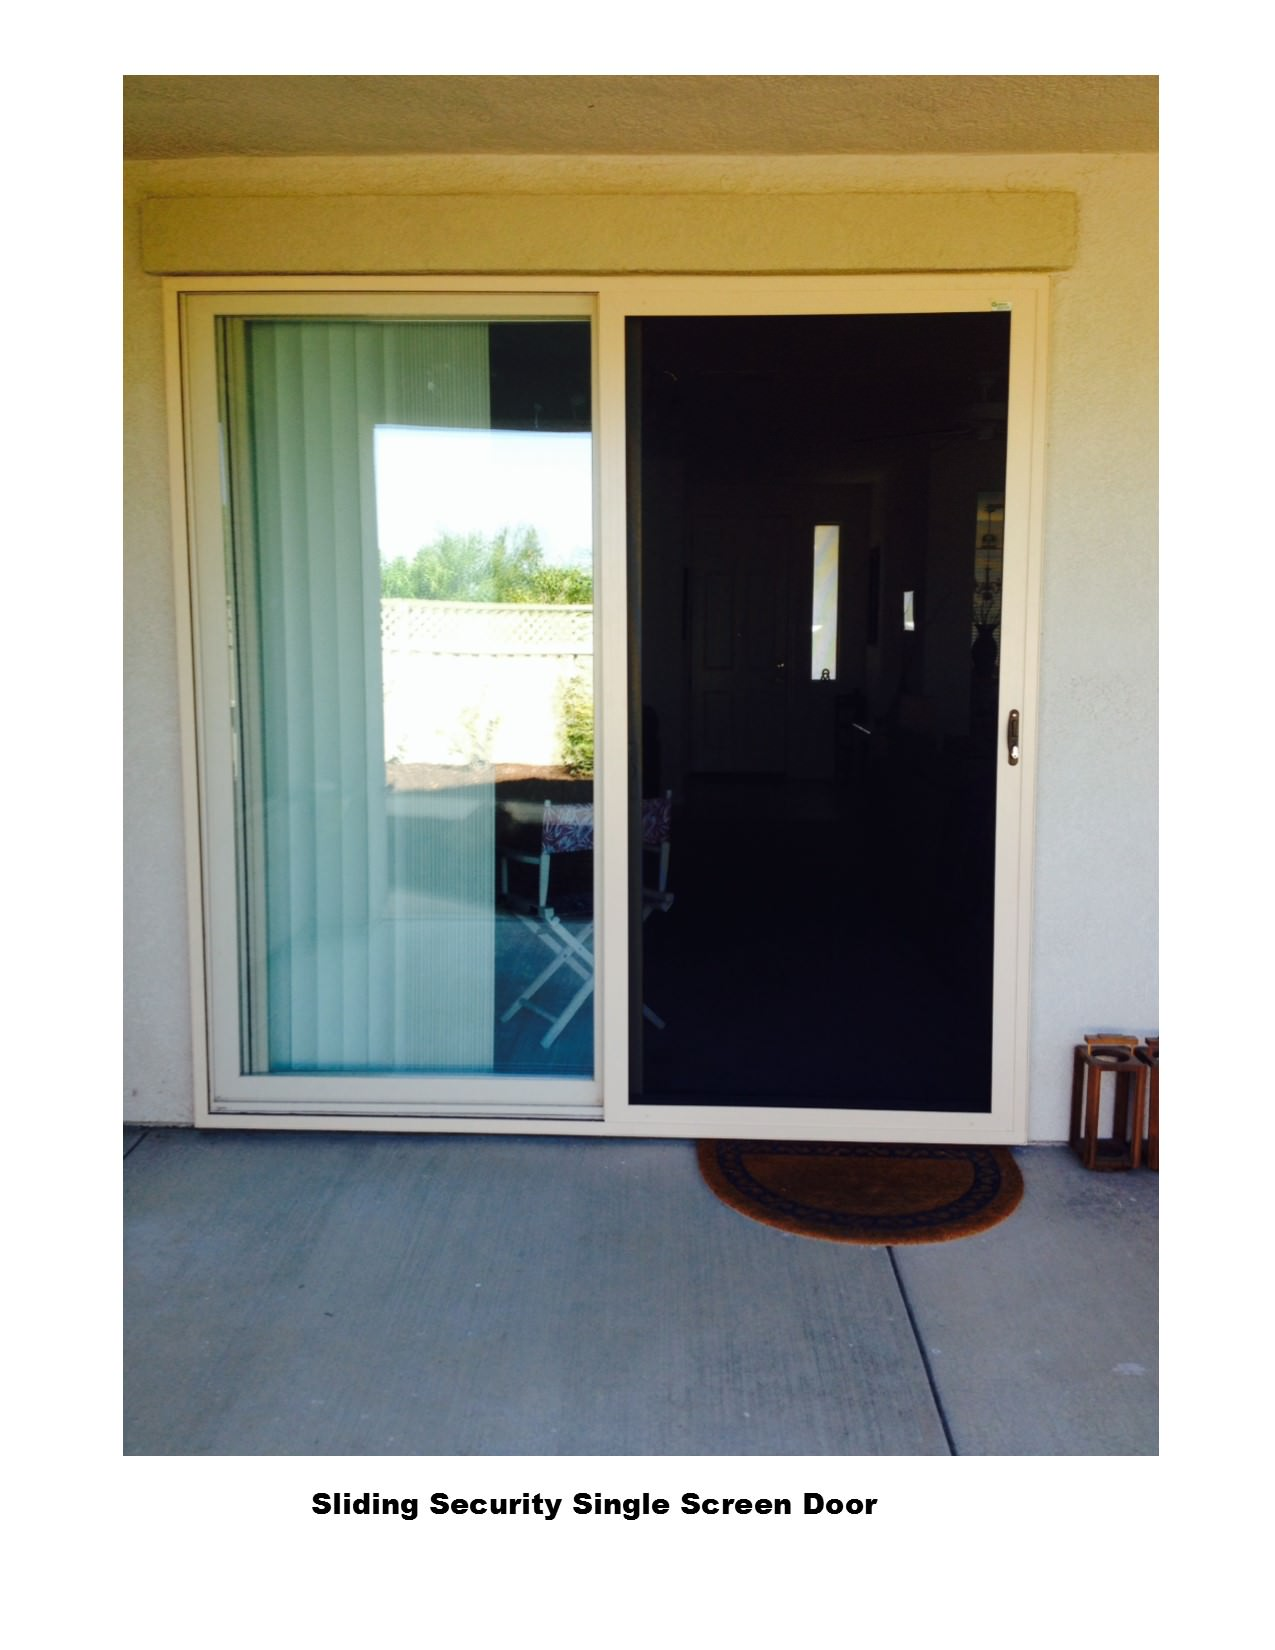 Sliding security screen doors screens 4 less available in the stainless steel mesh style similar to viewguard in single or double door options vtopaller Choice Image